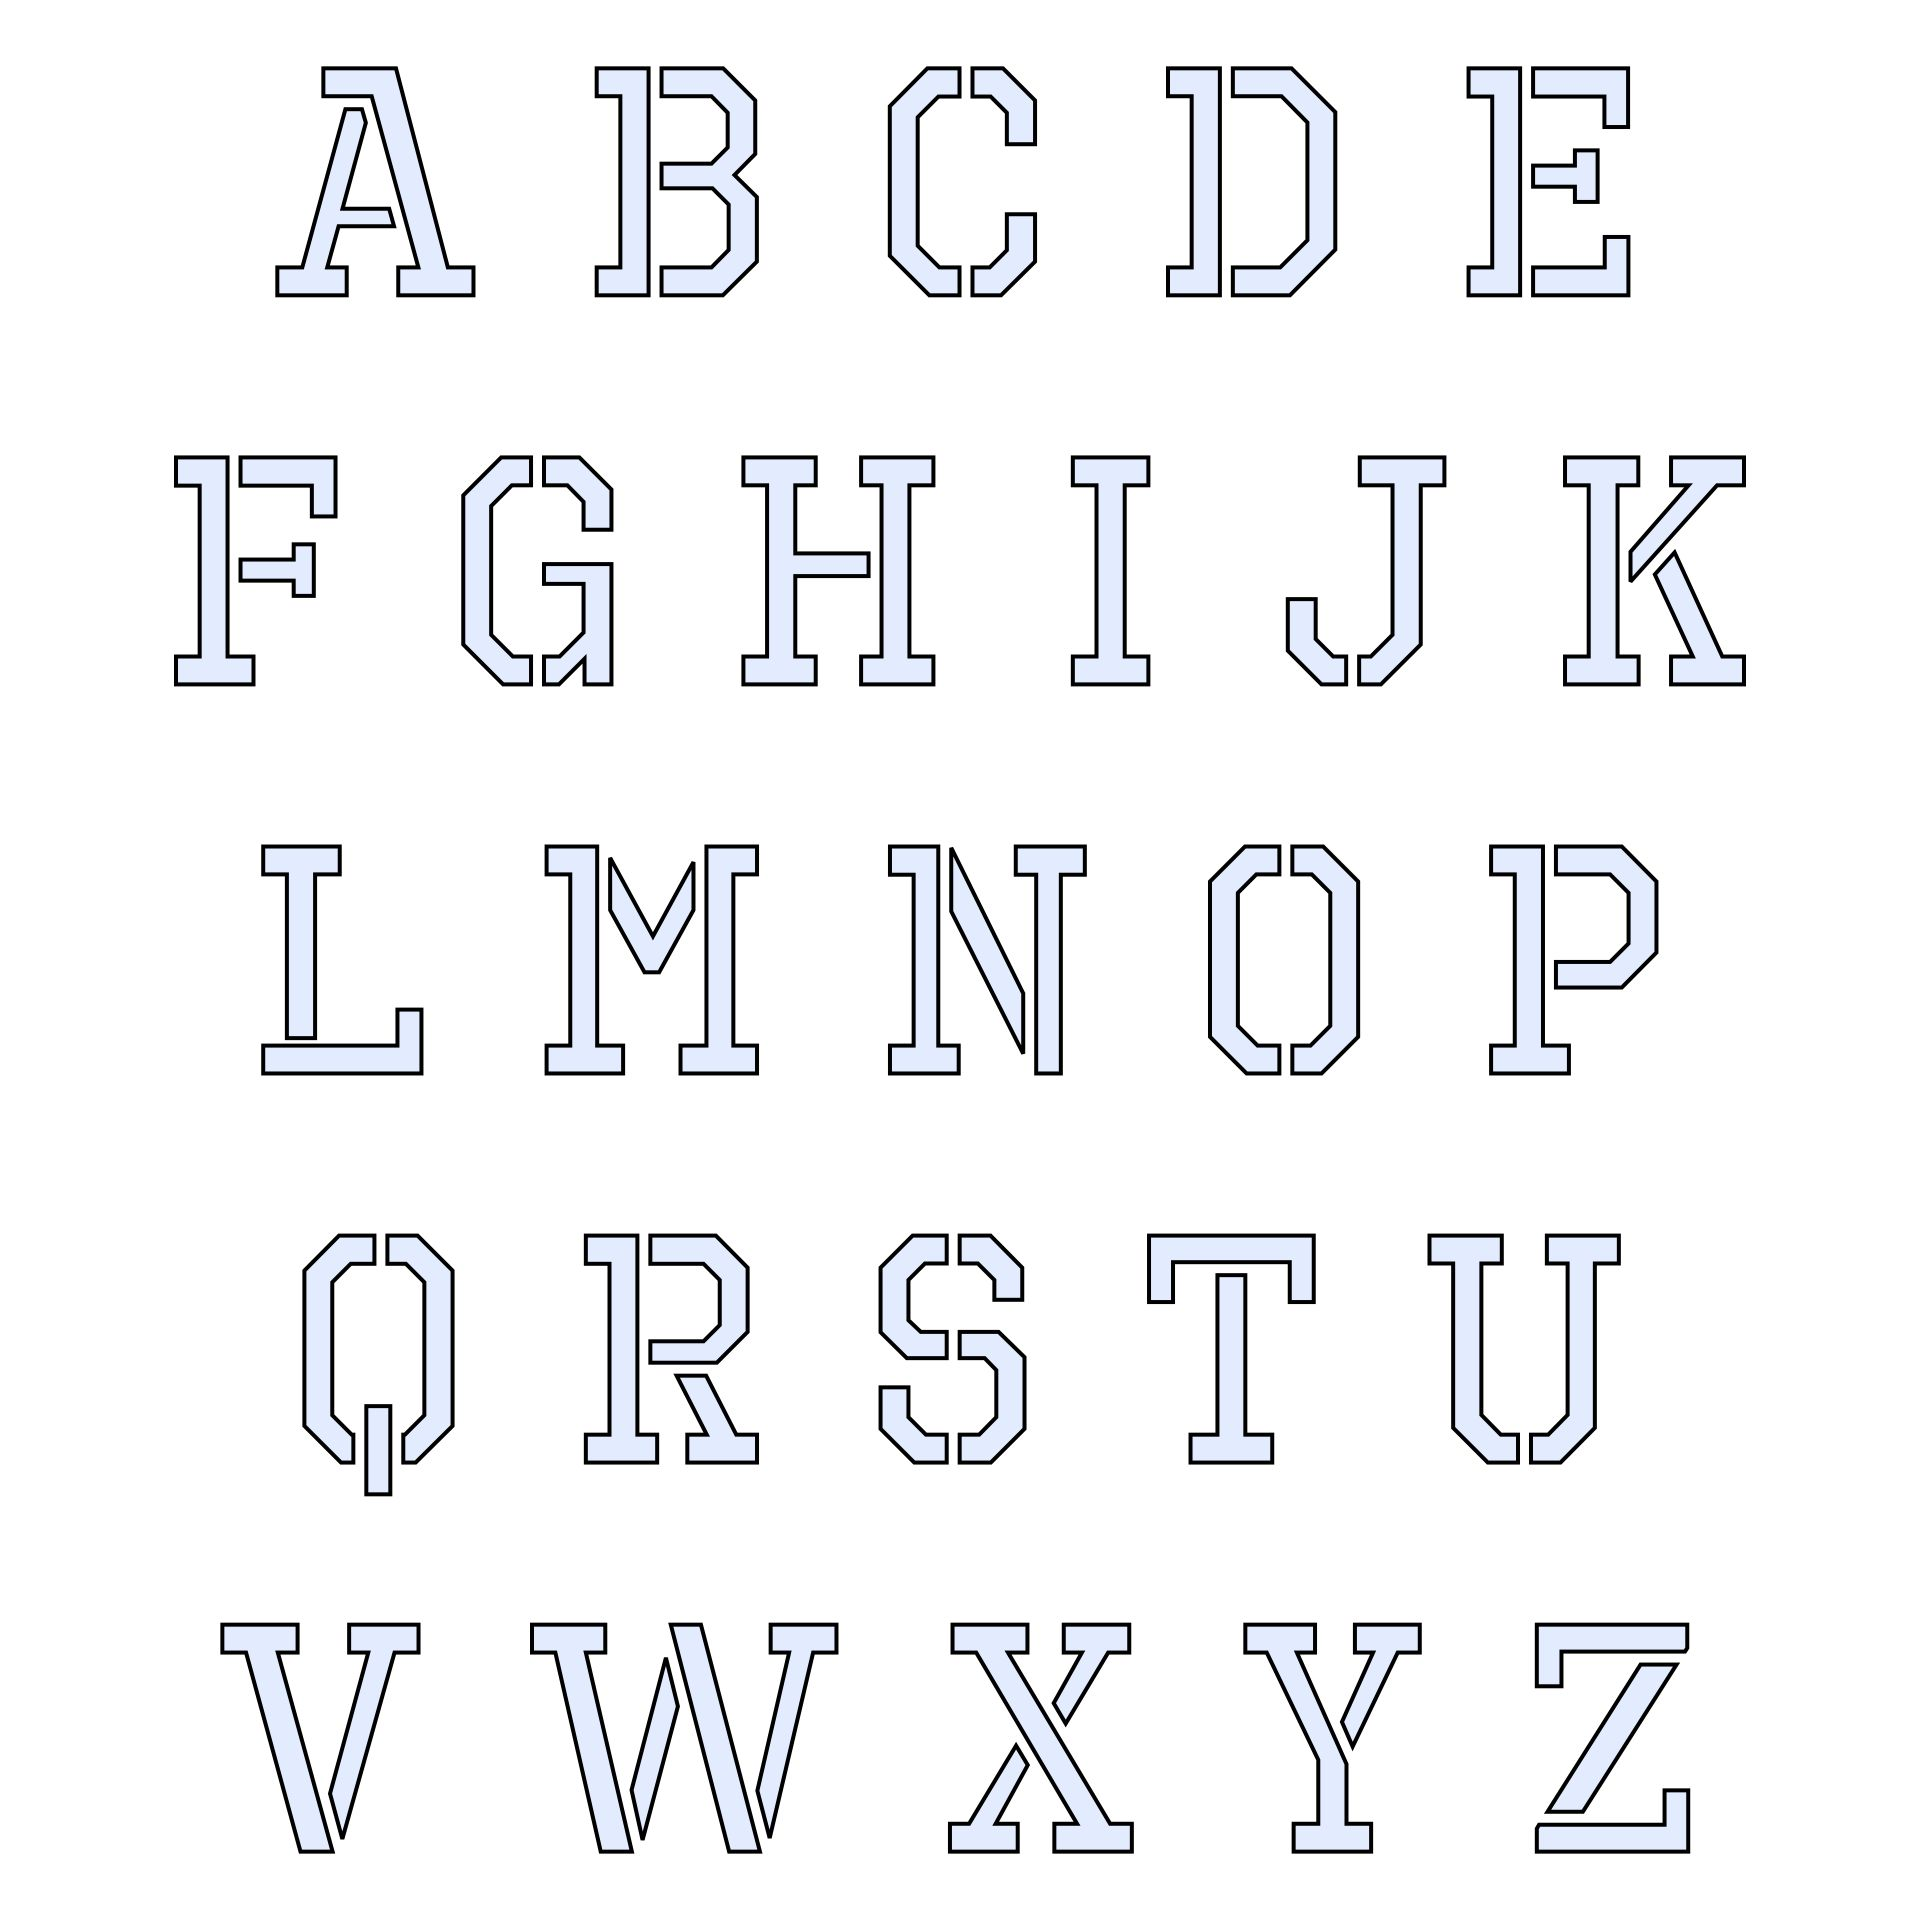 Letter Stencils to Print and Cut Out